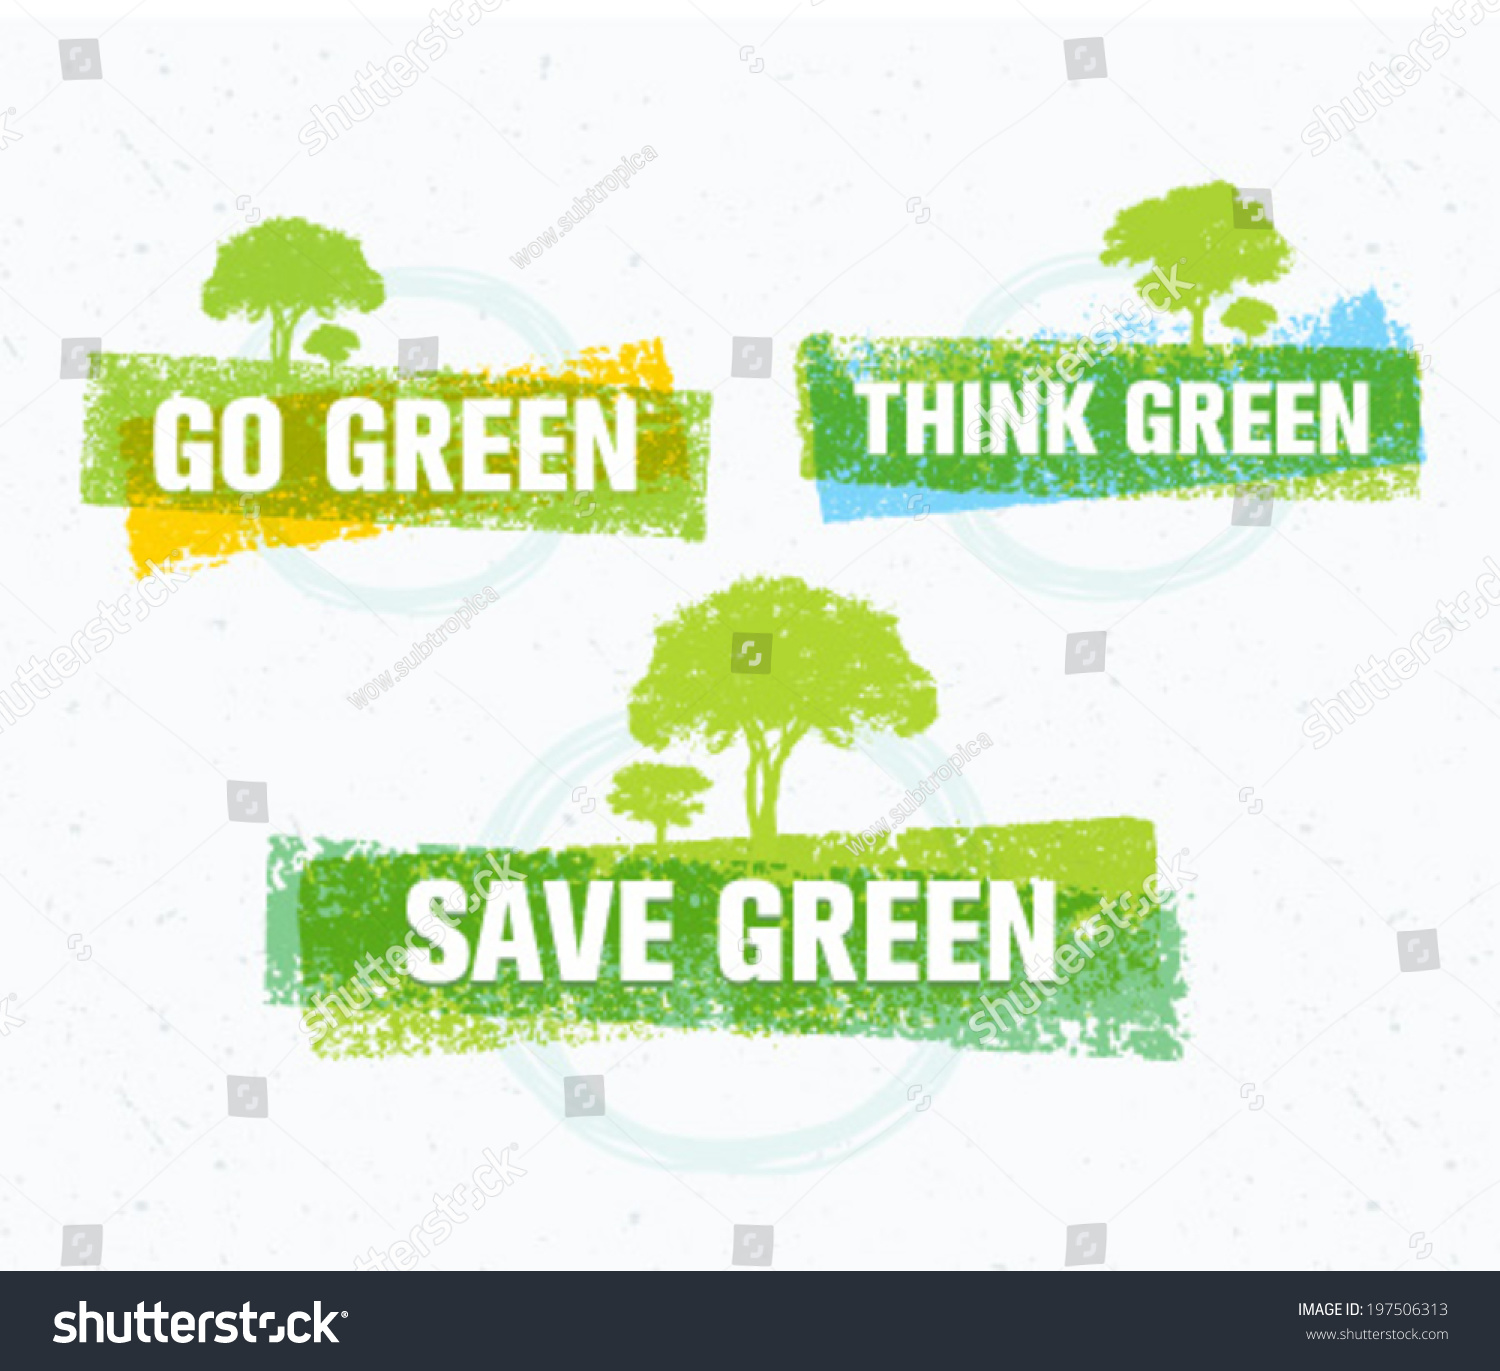 going green essay papers Going green essay - all sorts of writing services & research papers put out a little time and money to receive the essay you could not even think of let the top.